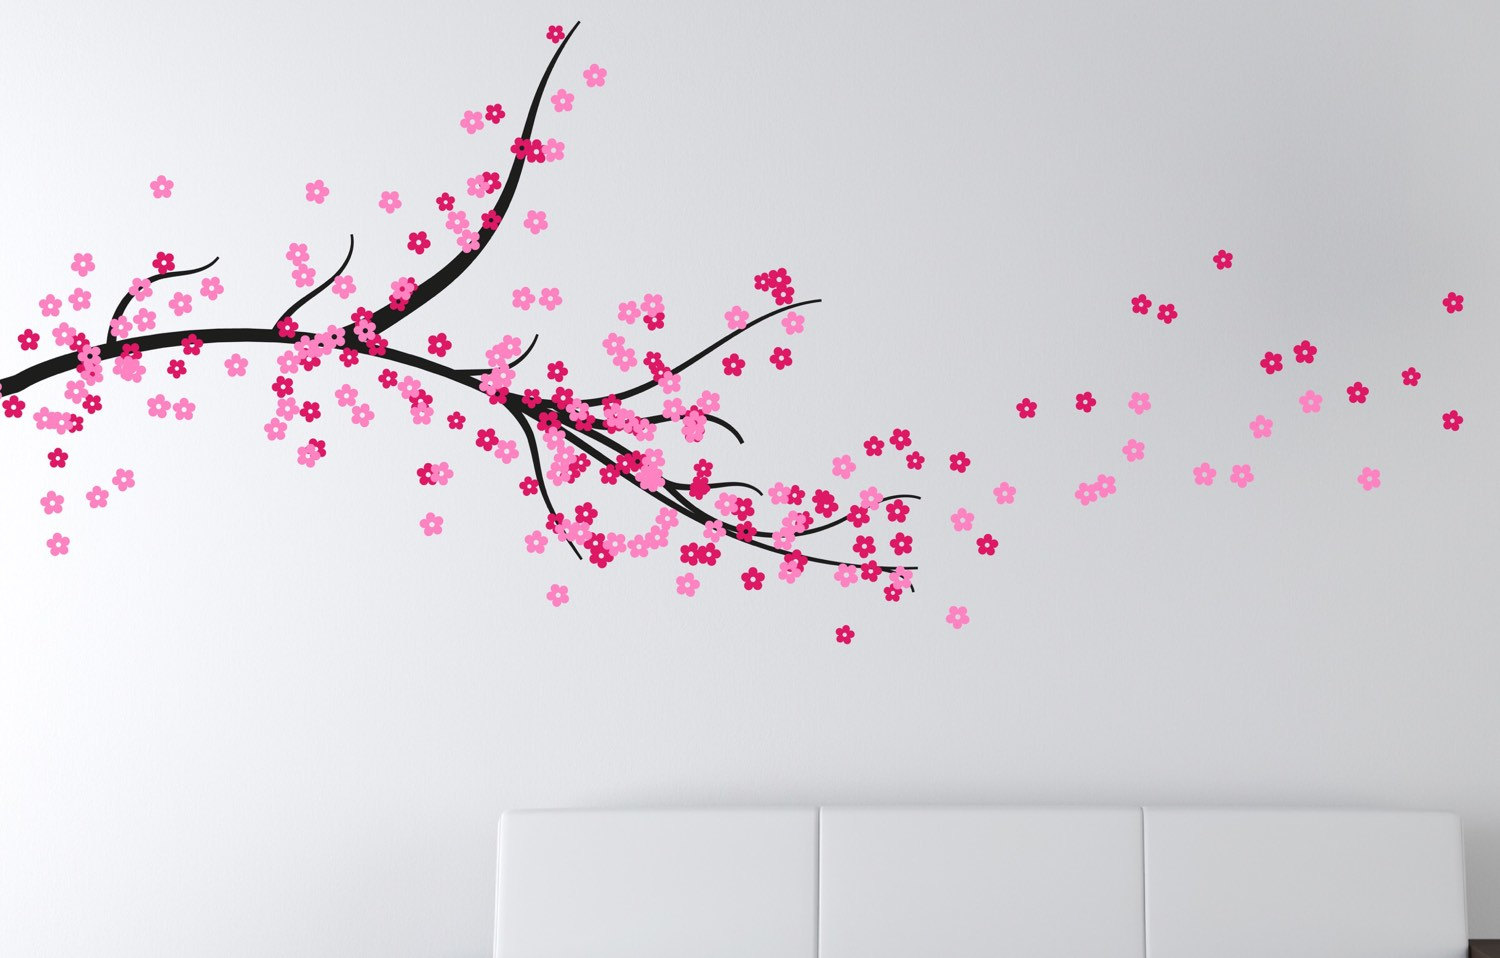 Nusery Wall Stickers Cherry Blossom Tree Branch Stunning Wall Designs And